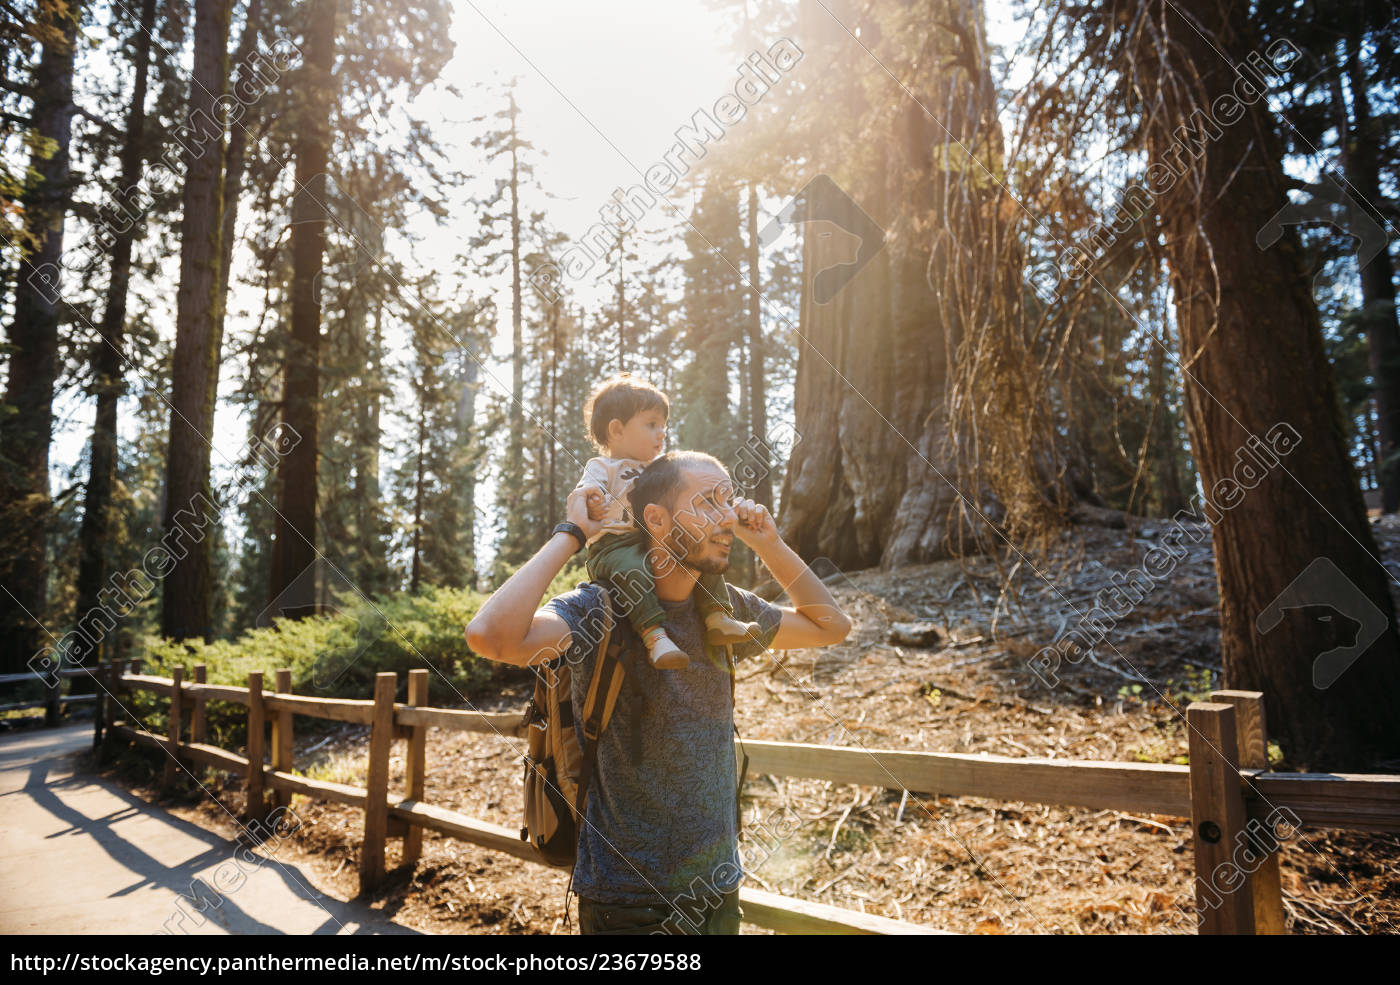 usa, , california, , father, and, baby, visiting - 23679588